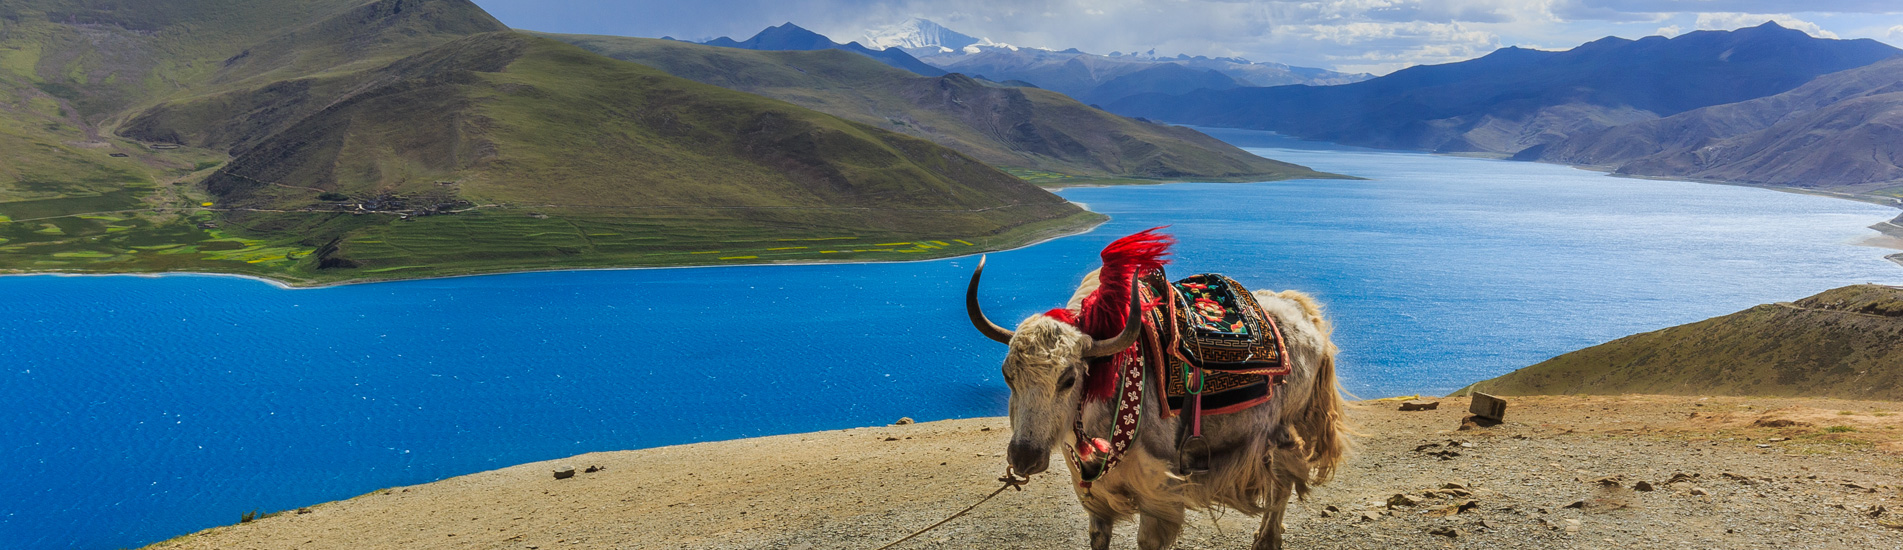 Lake Yamdrok in Tibet